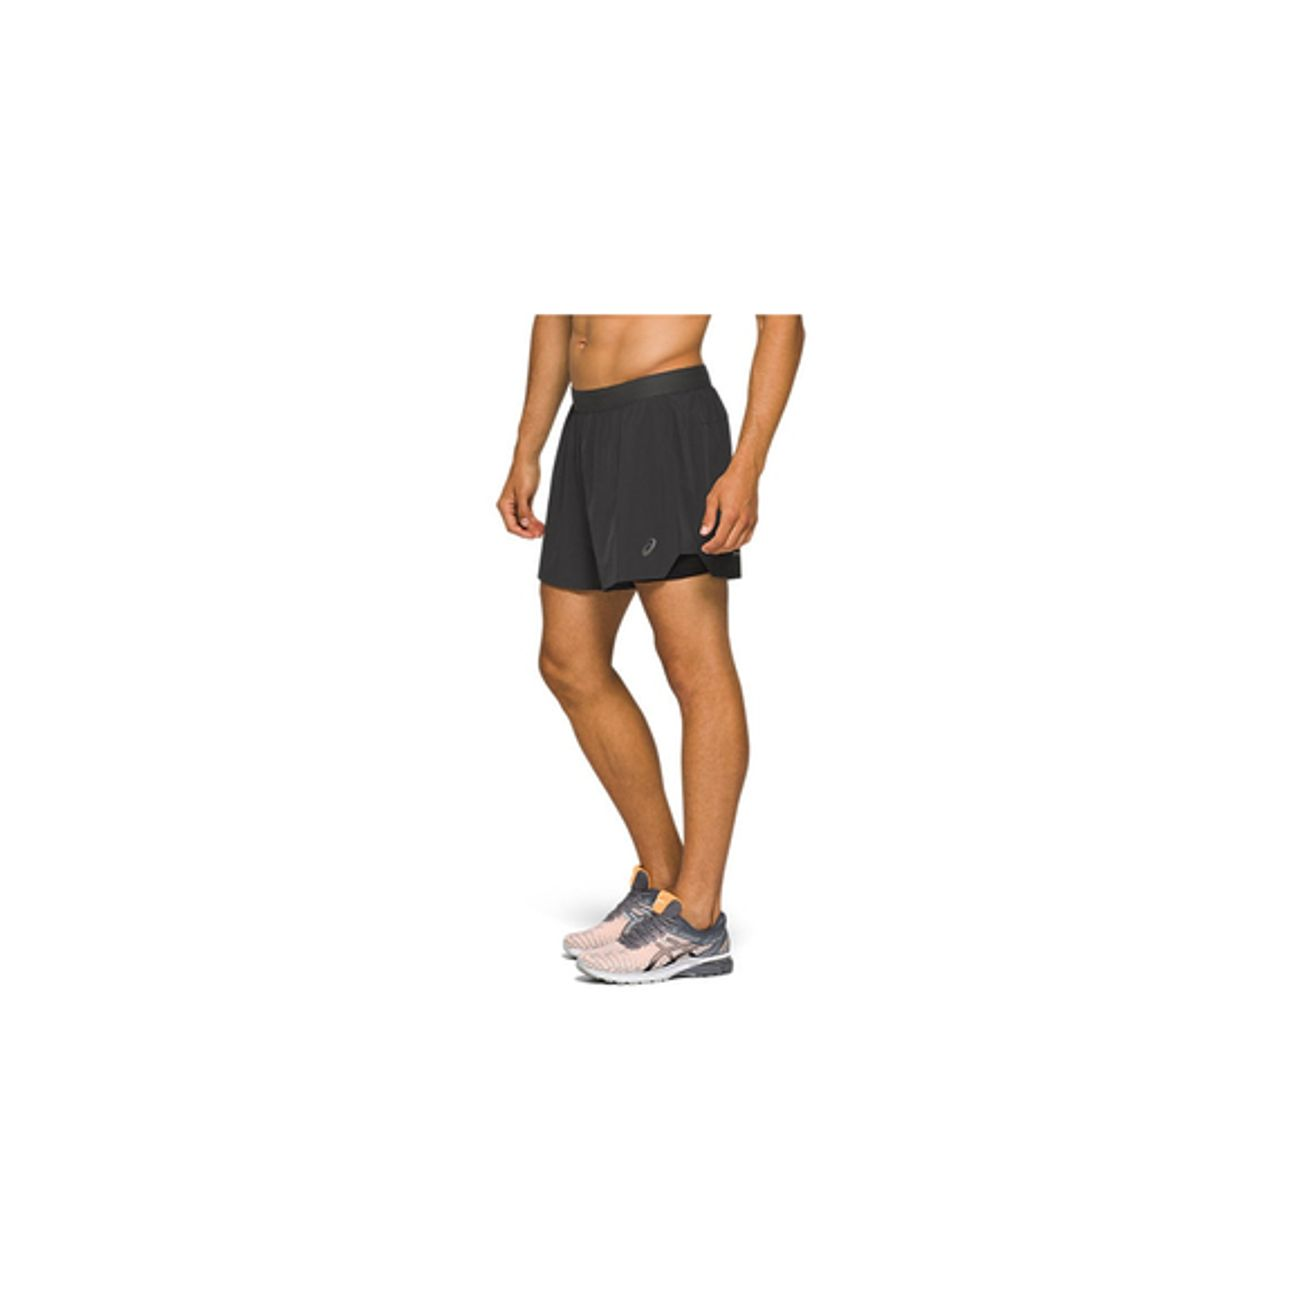 Course à pied homme ASICS Short Asics Road 2-n-1 5in